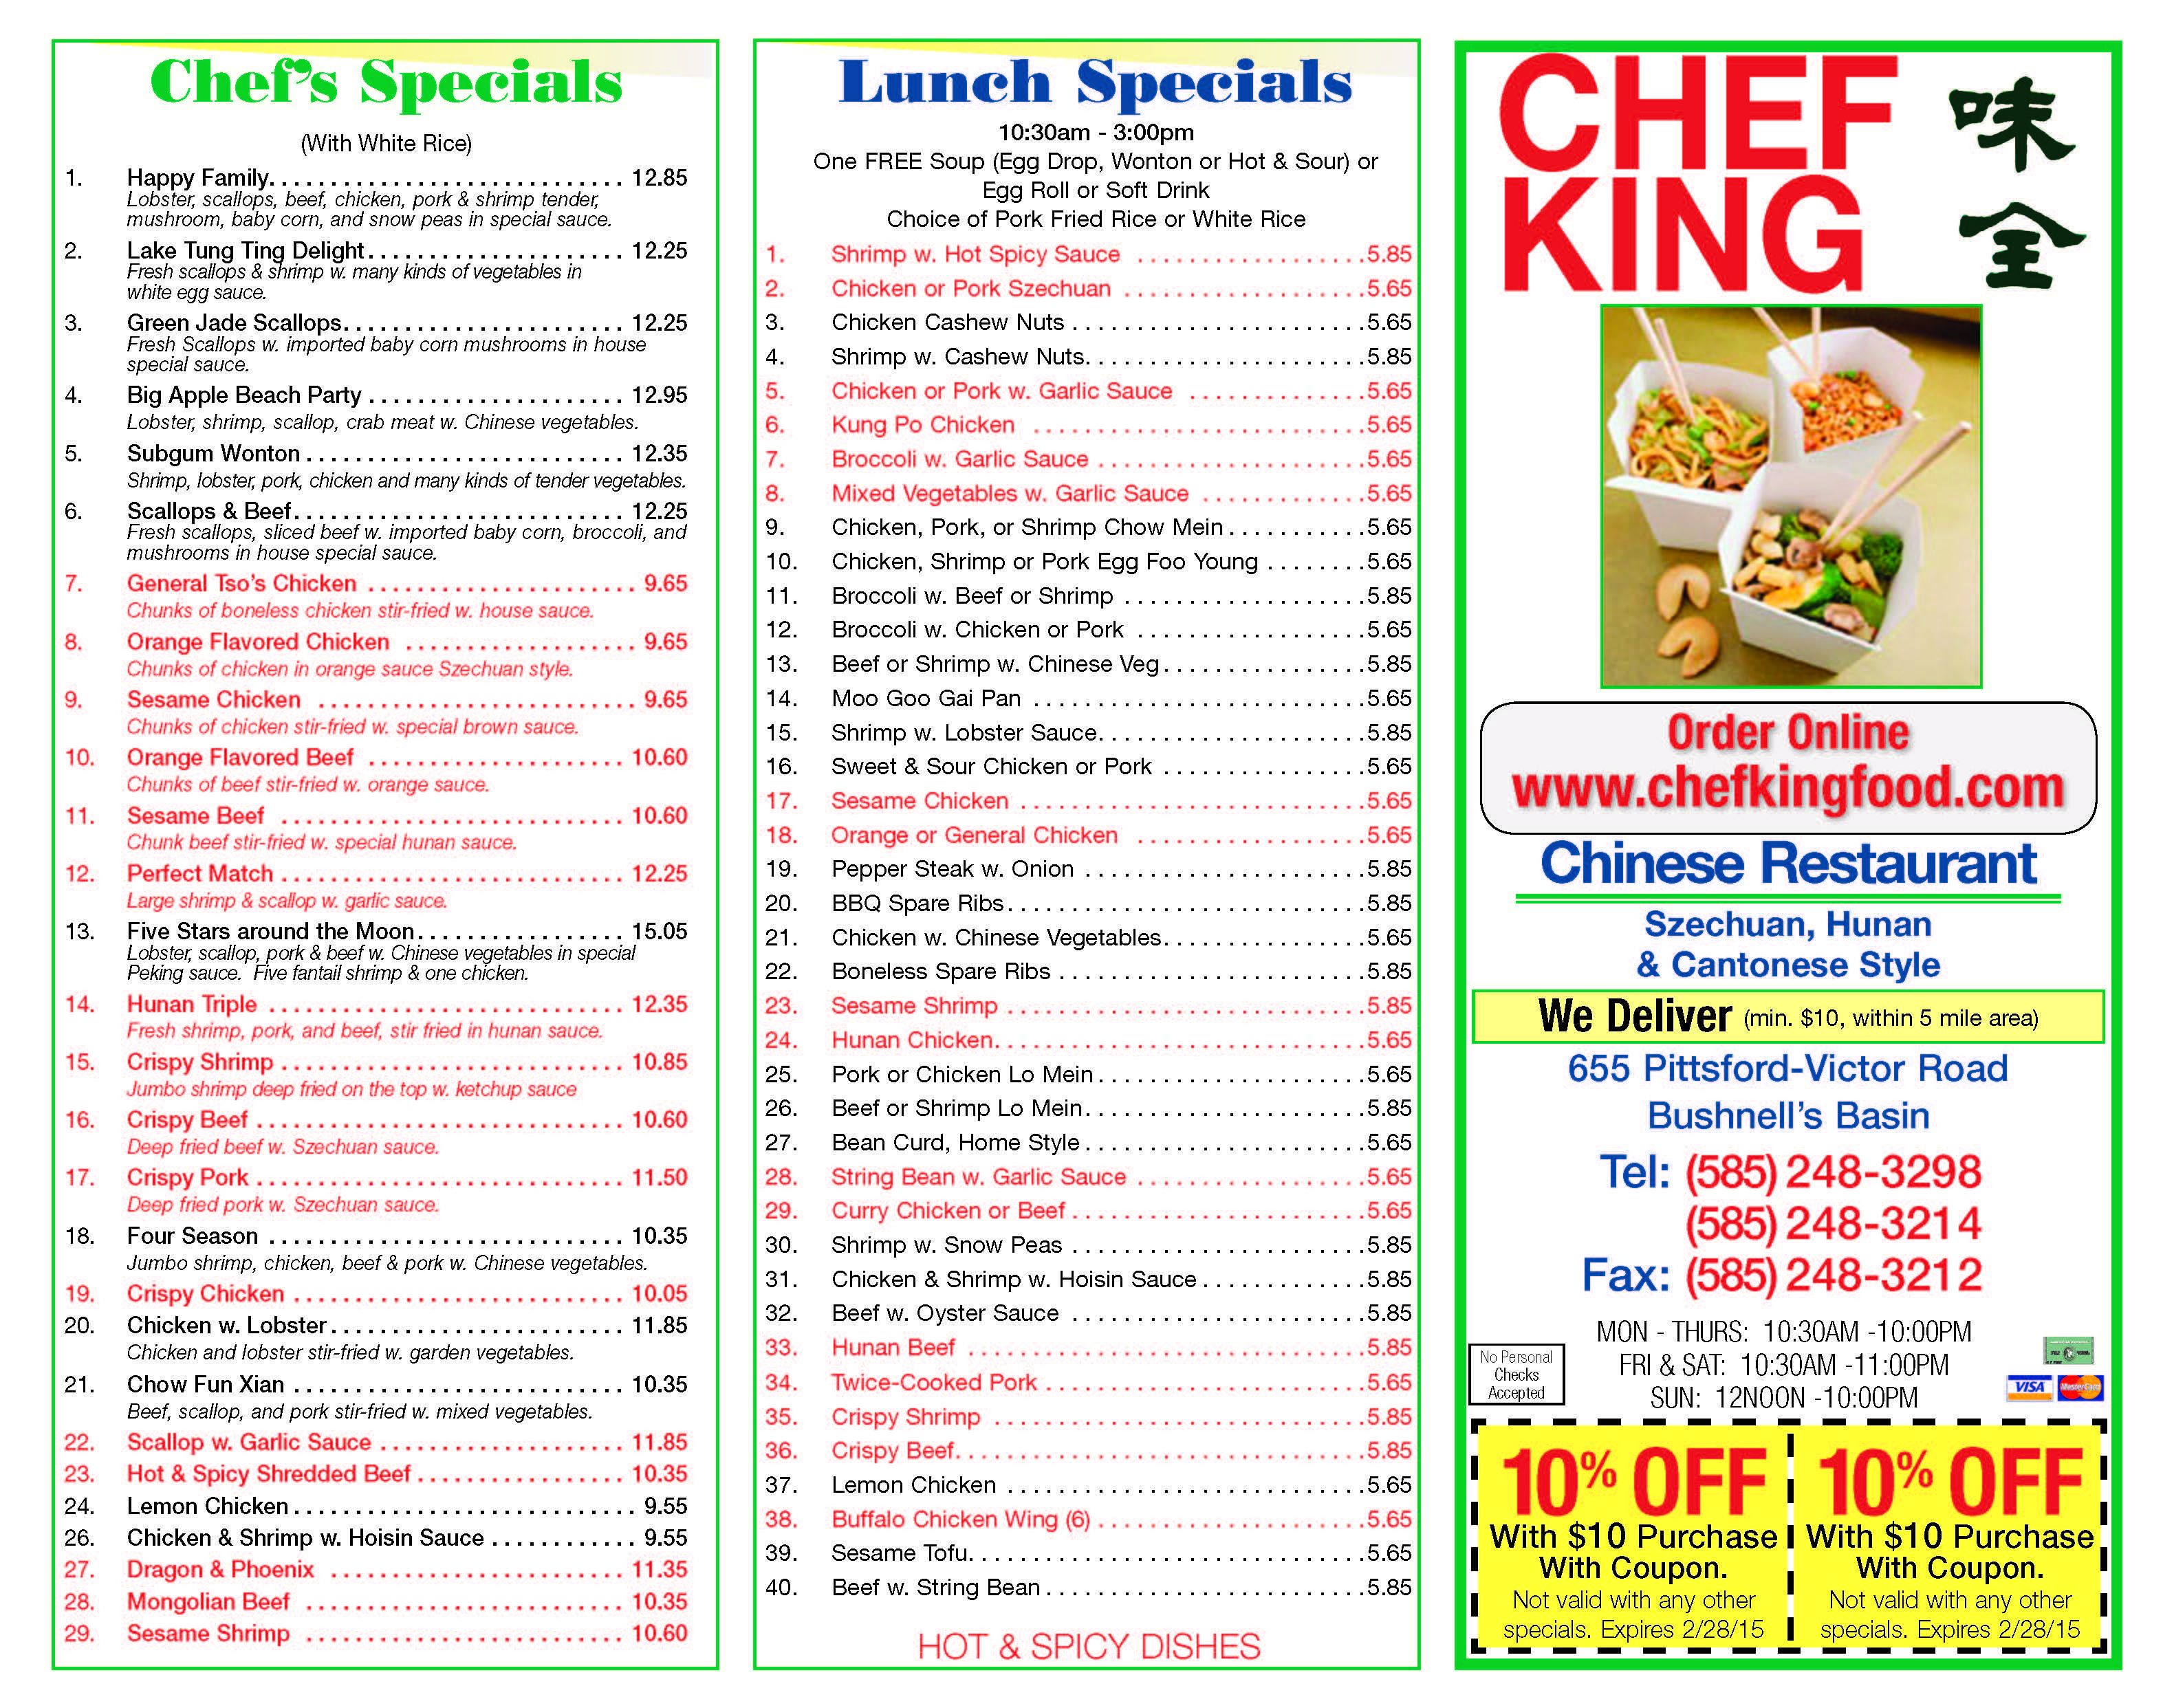 Chef king serves delicious authentic chinese cuisine w a